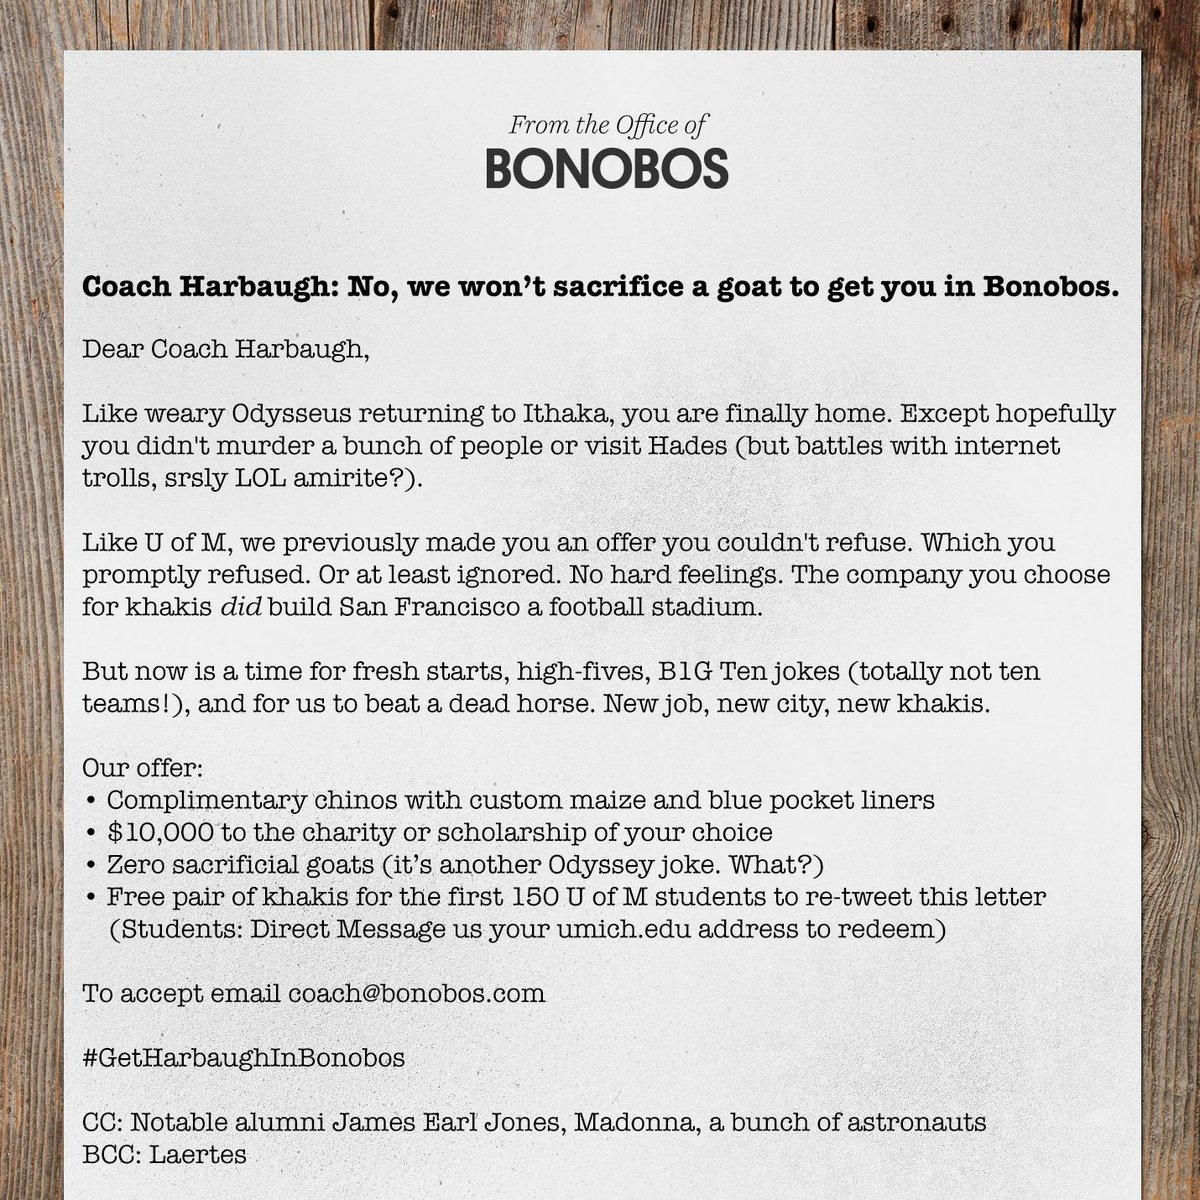 Another Open Letter to Coach Harbaugh. RT and help us #GetHarbaughInBonobos http://t.co/r2sopvMrc3